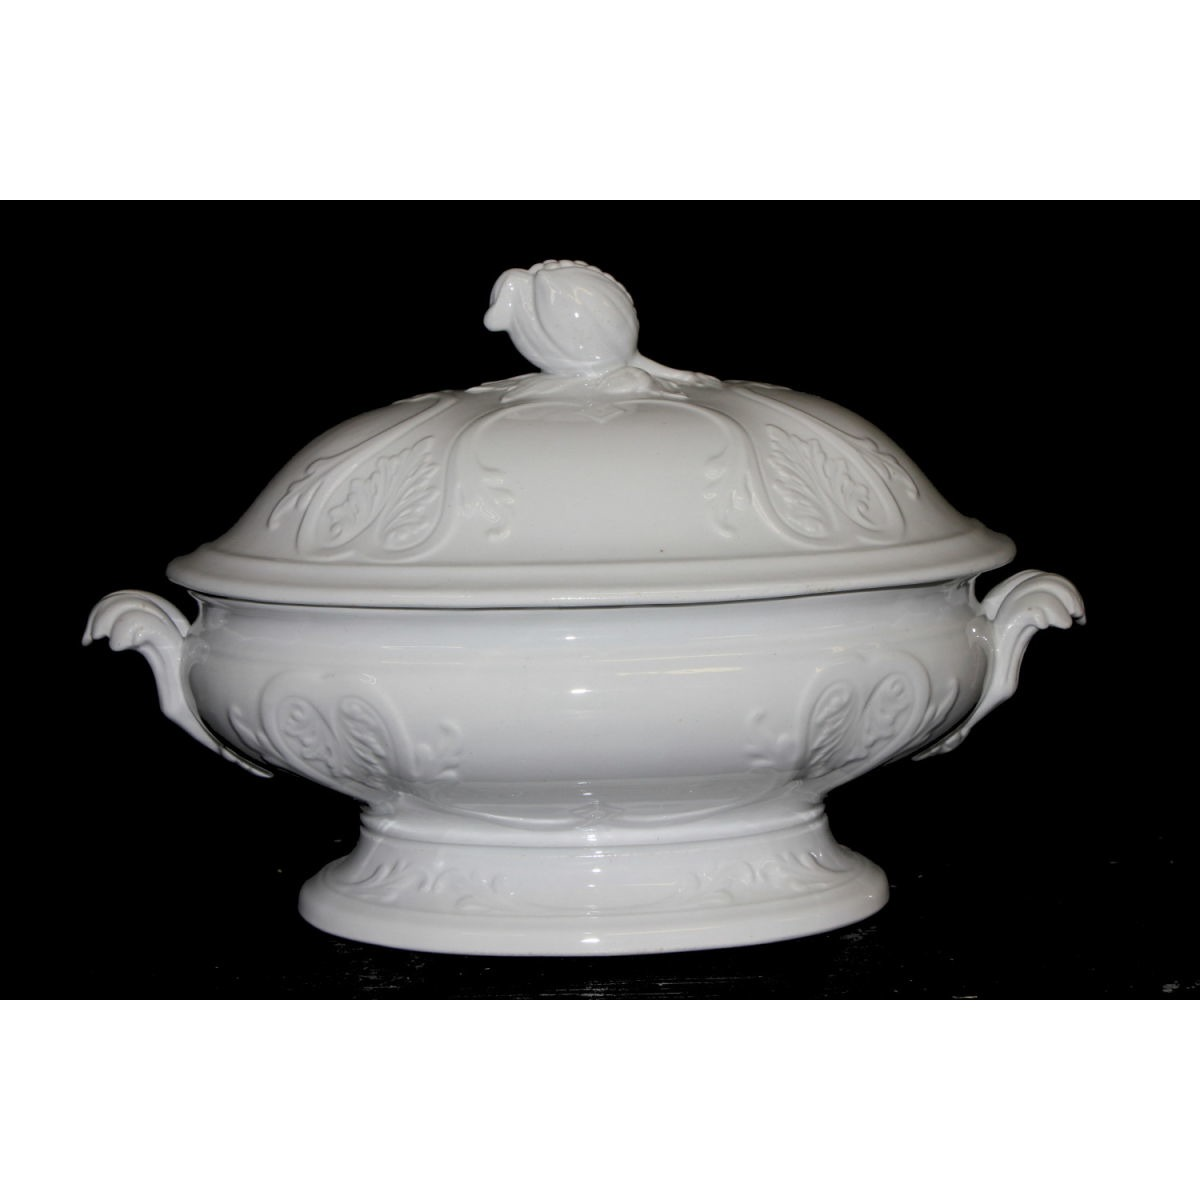 Fabulous Large New York Shape Ironstone Highly Embossed Vegetable Tureen